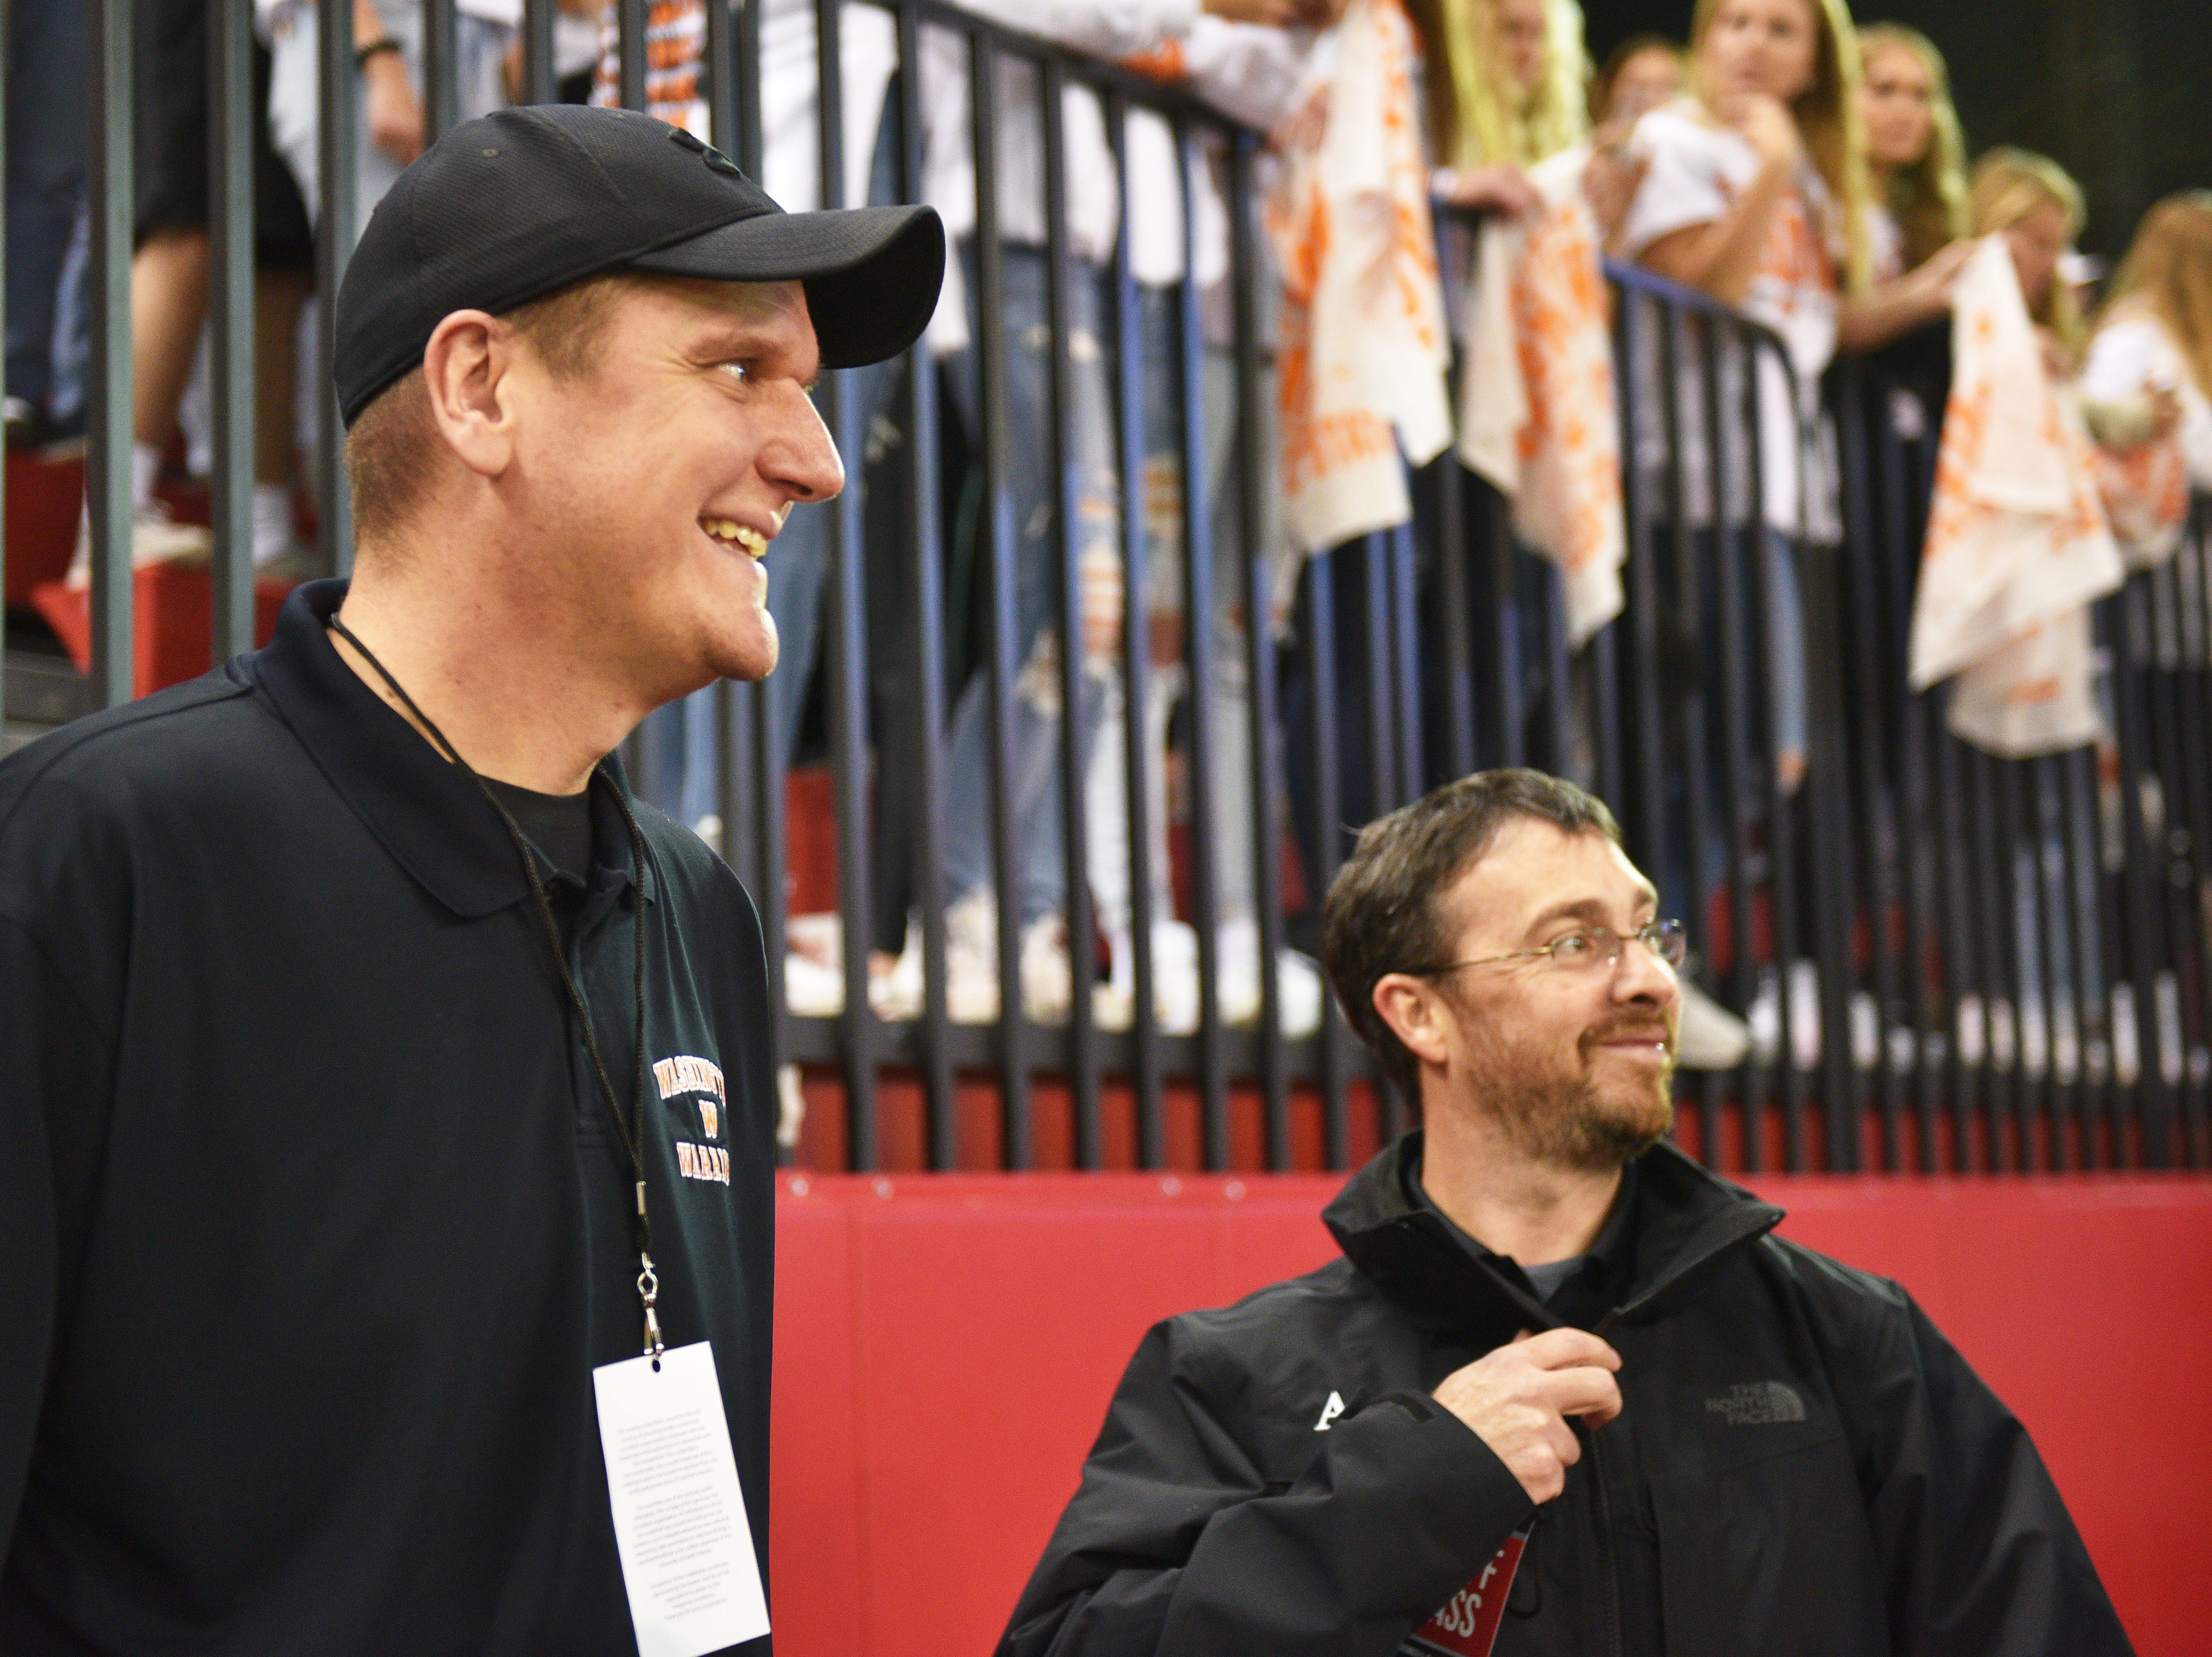 Washington activities director Nate Malchow at the 11AAA championship game Saturday, Nov. 10, at the DakotaDome in Vermillion.